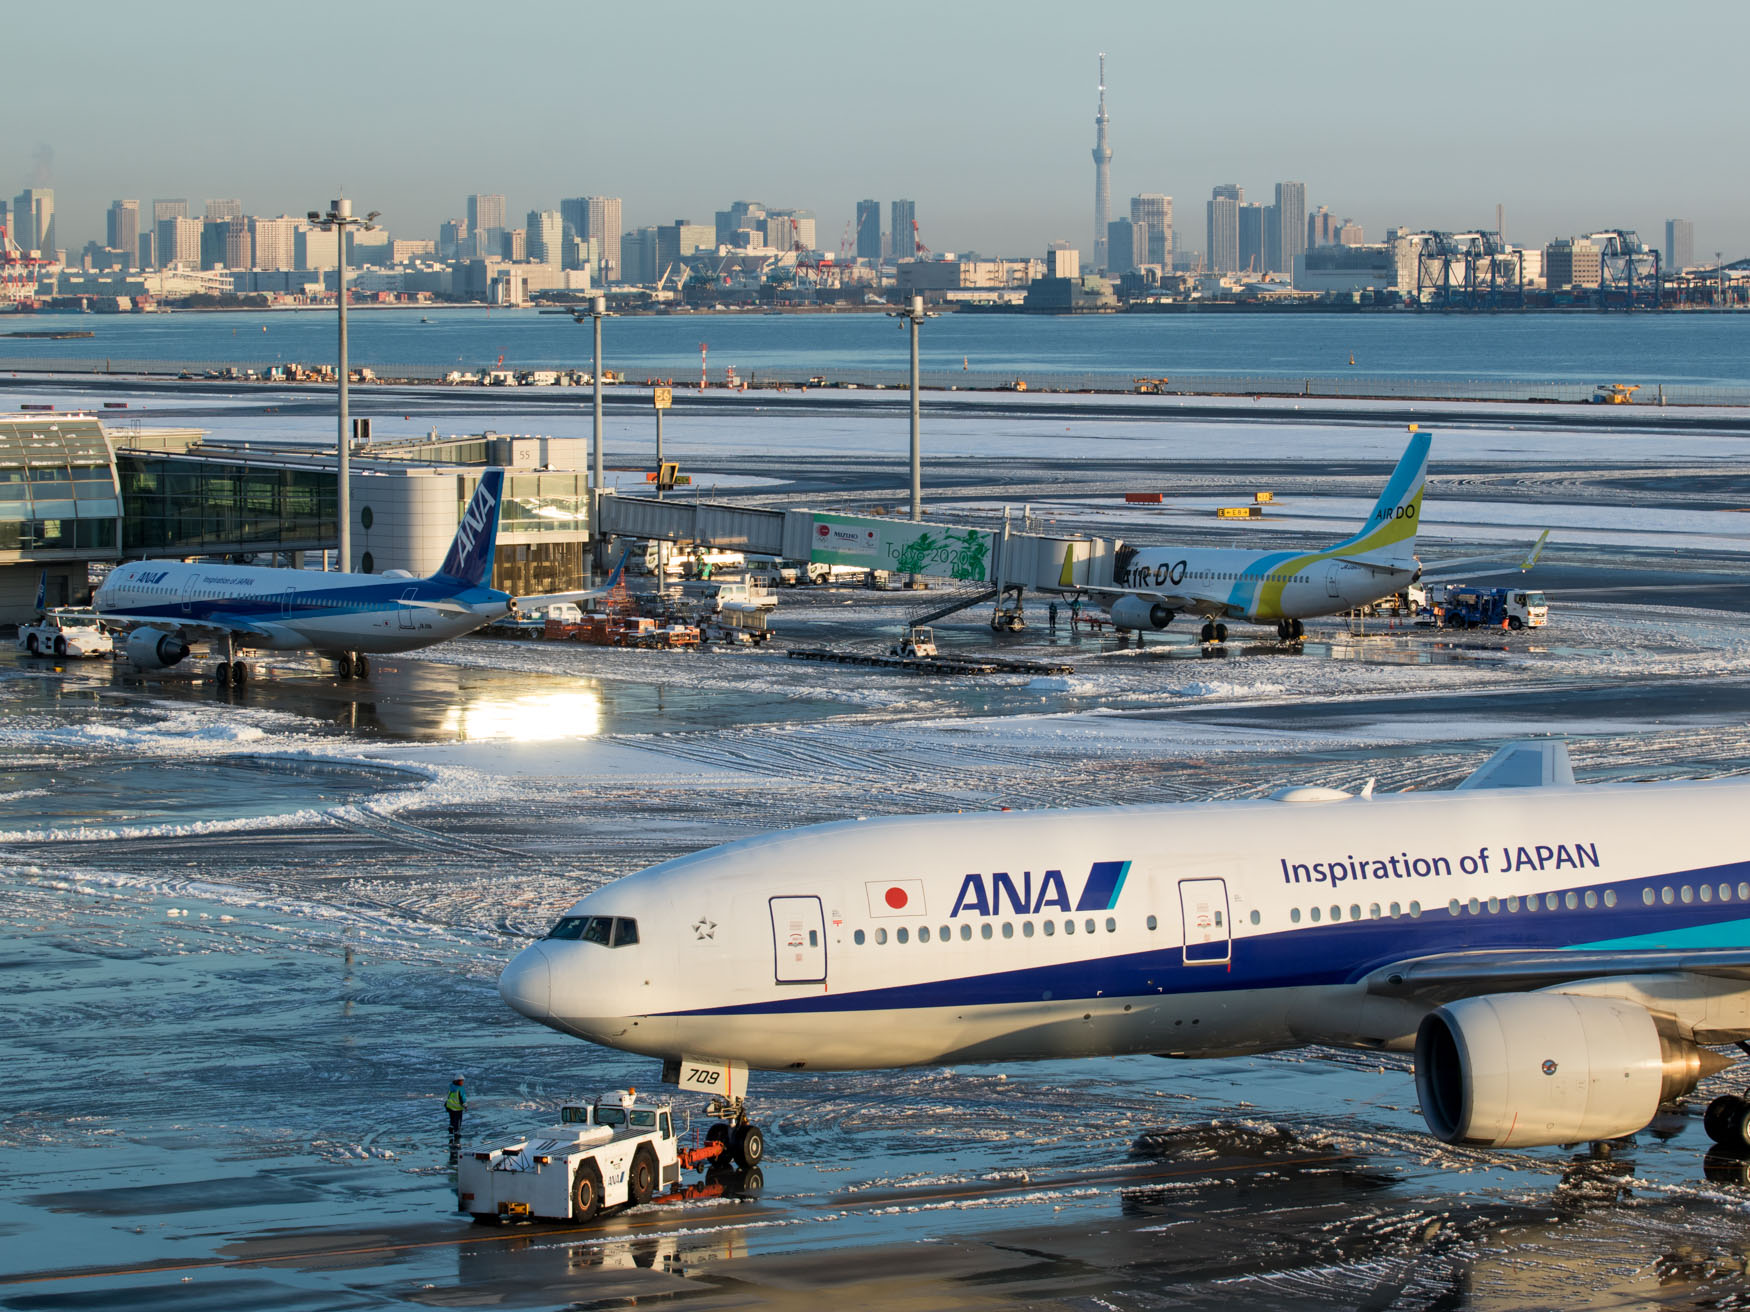 ANA 777-200 Pushing Back in Front of Sky Tree